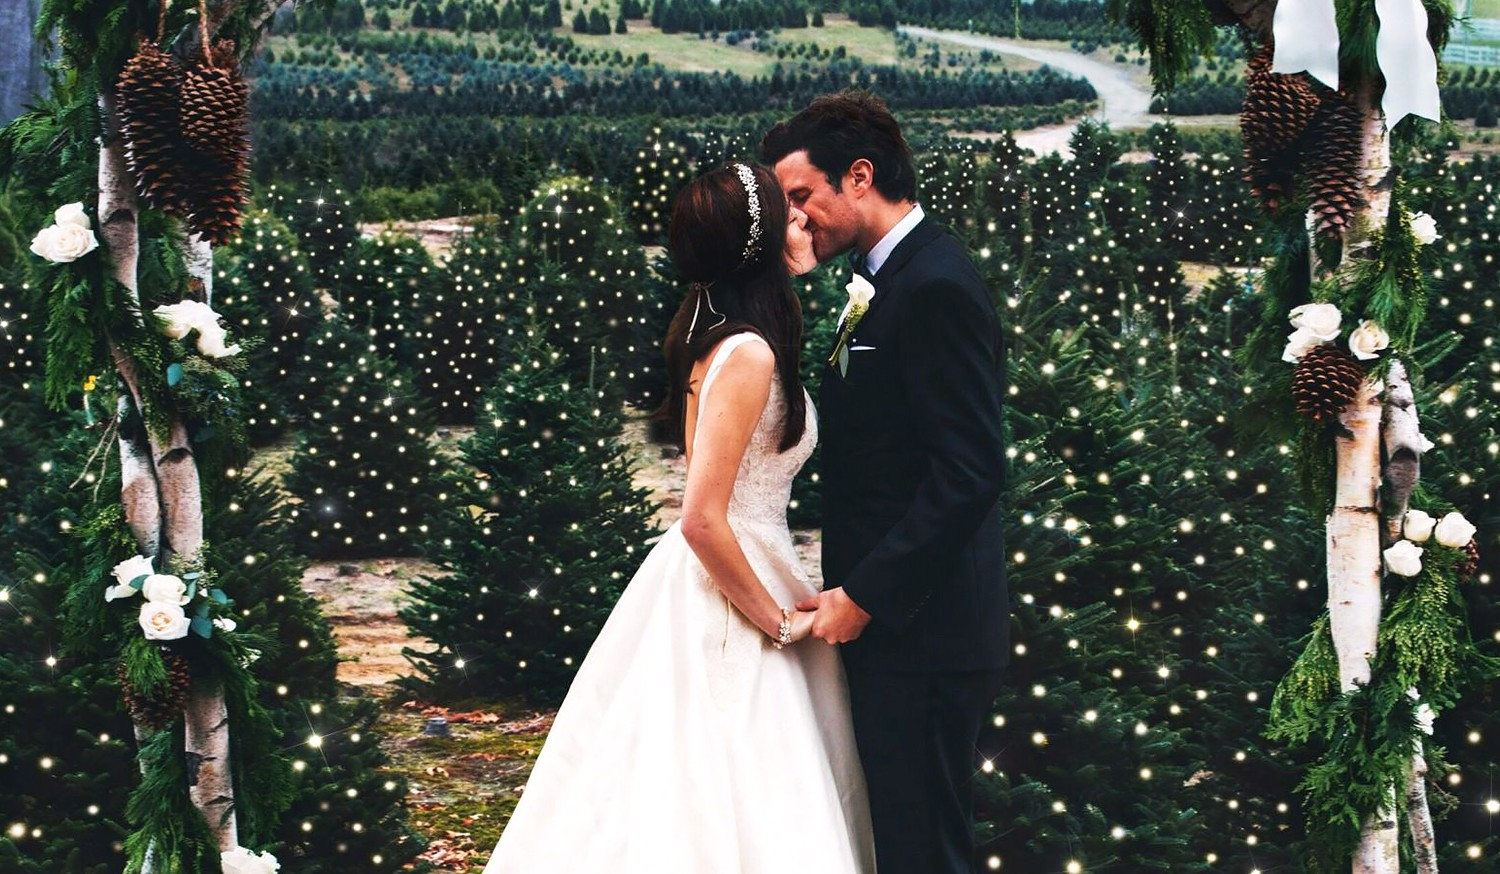 Christmas Tree Farm Weddings.Couple Has Christmas Tree Farm Wedding To Honor Tradition